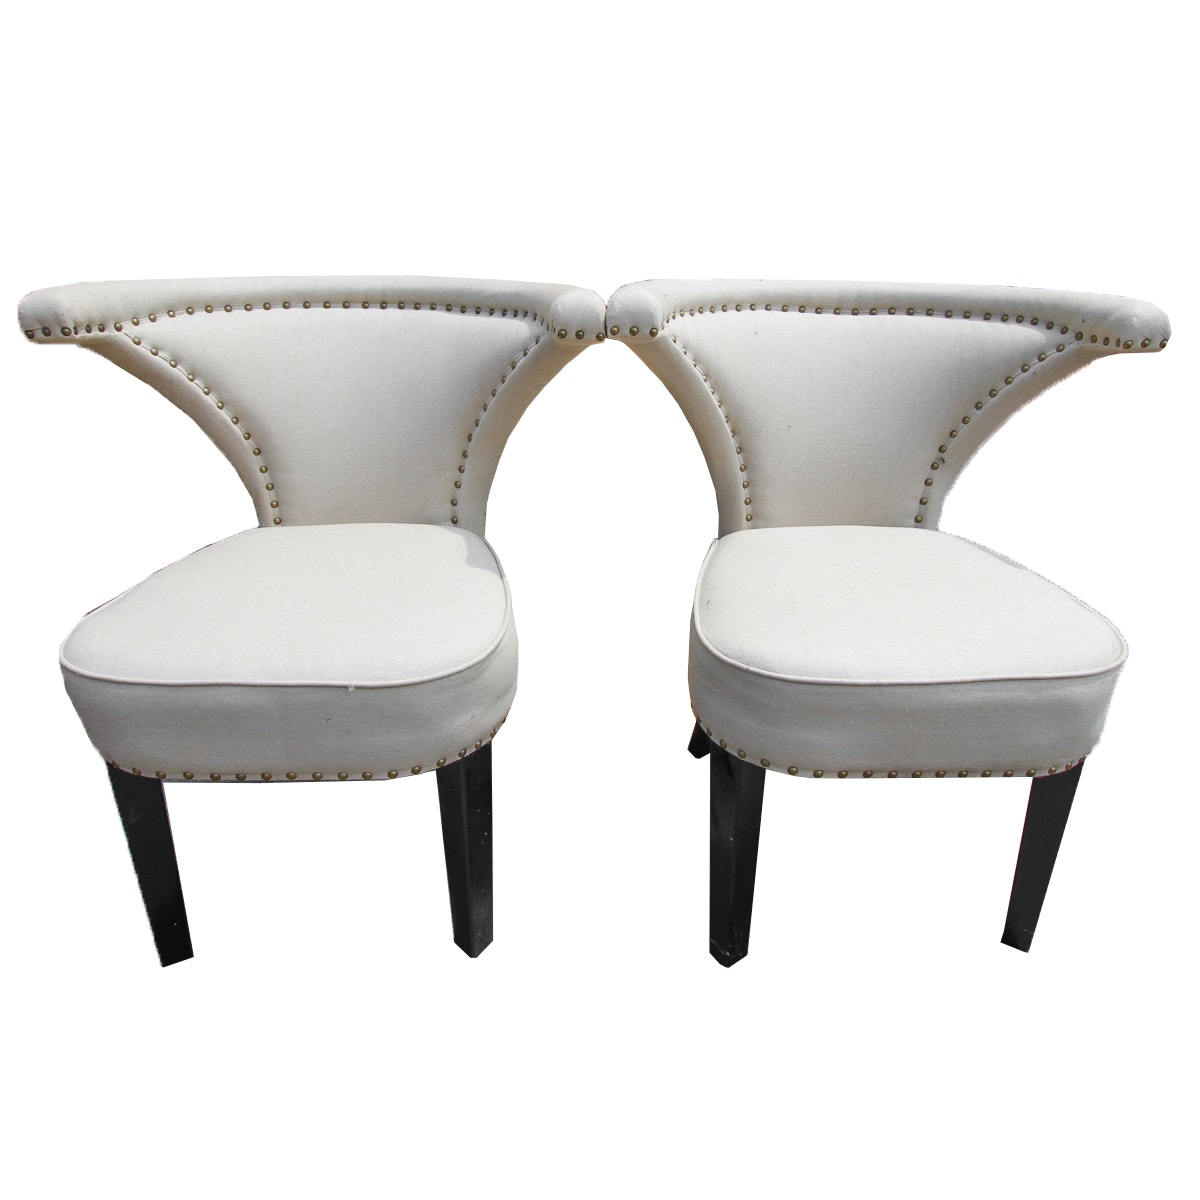 White Upholstered Chairs with Triangular Backs